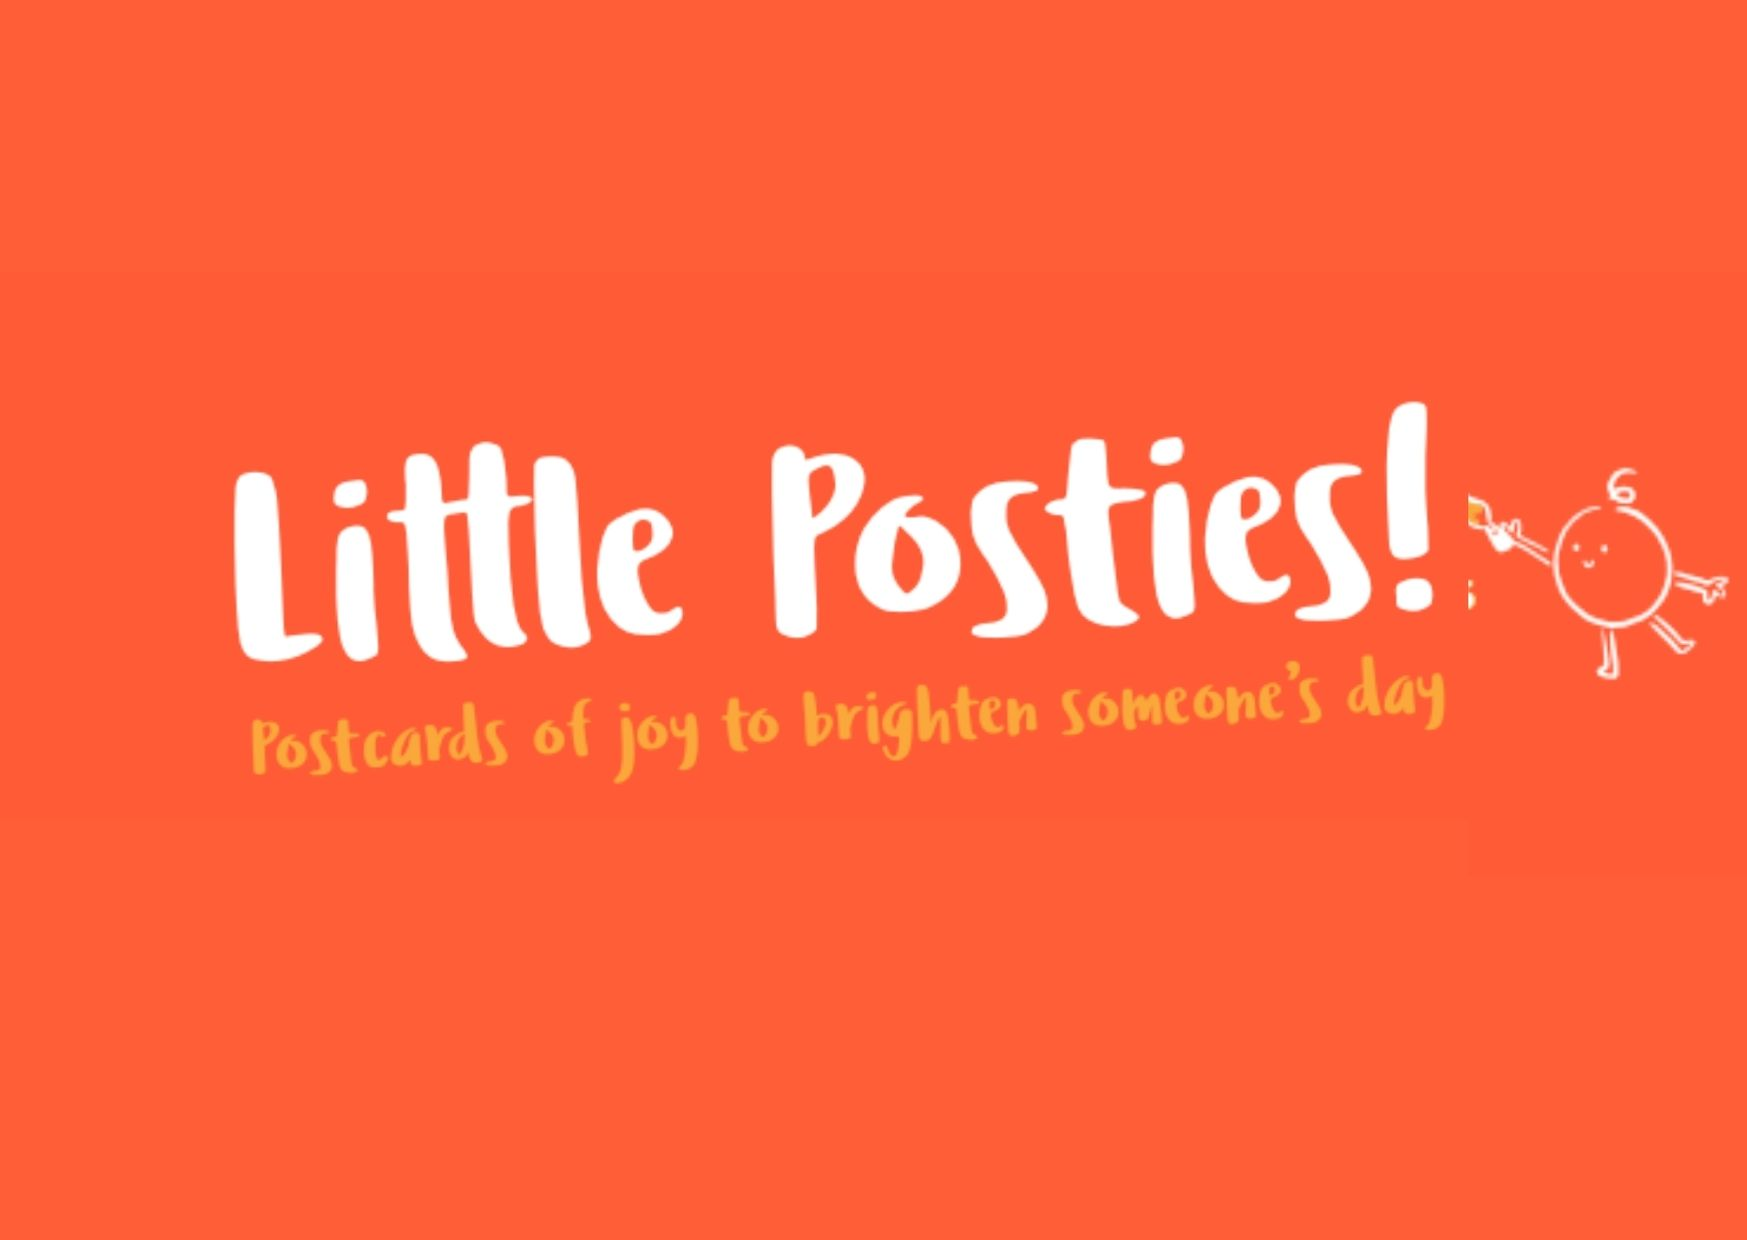 Discover ISLAND Arts' 'Little Posties' and stay connected in #Lockdown